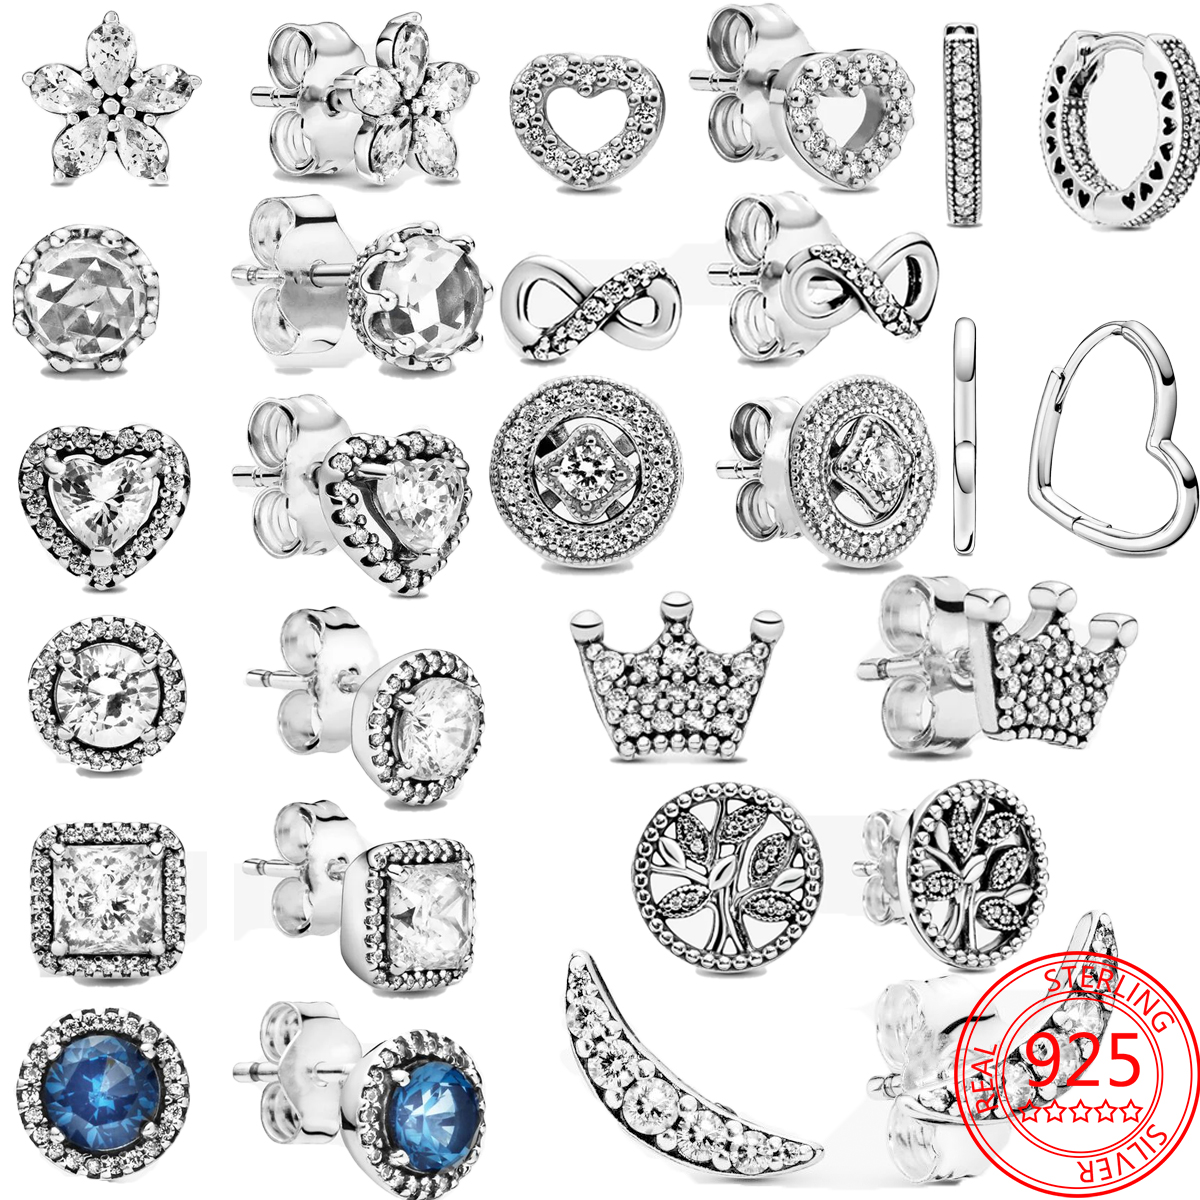 New 925 sterling silver Sparkling Family Tree Stud Earrings Crown Hoop Earrings Fashionable Birthday Gifts